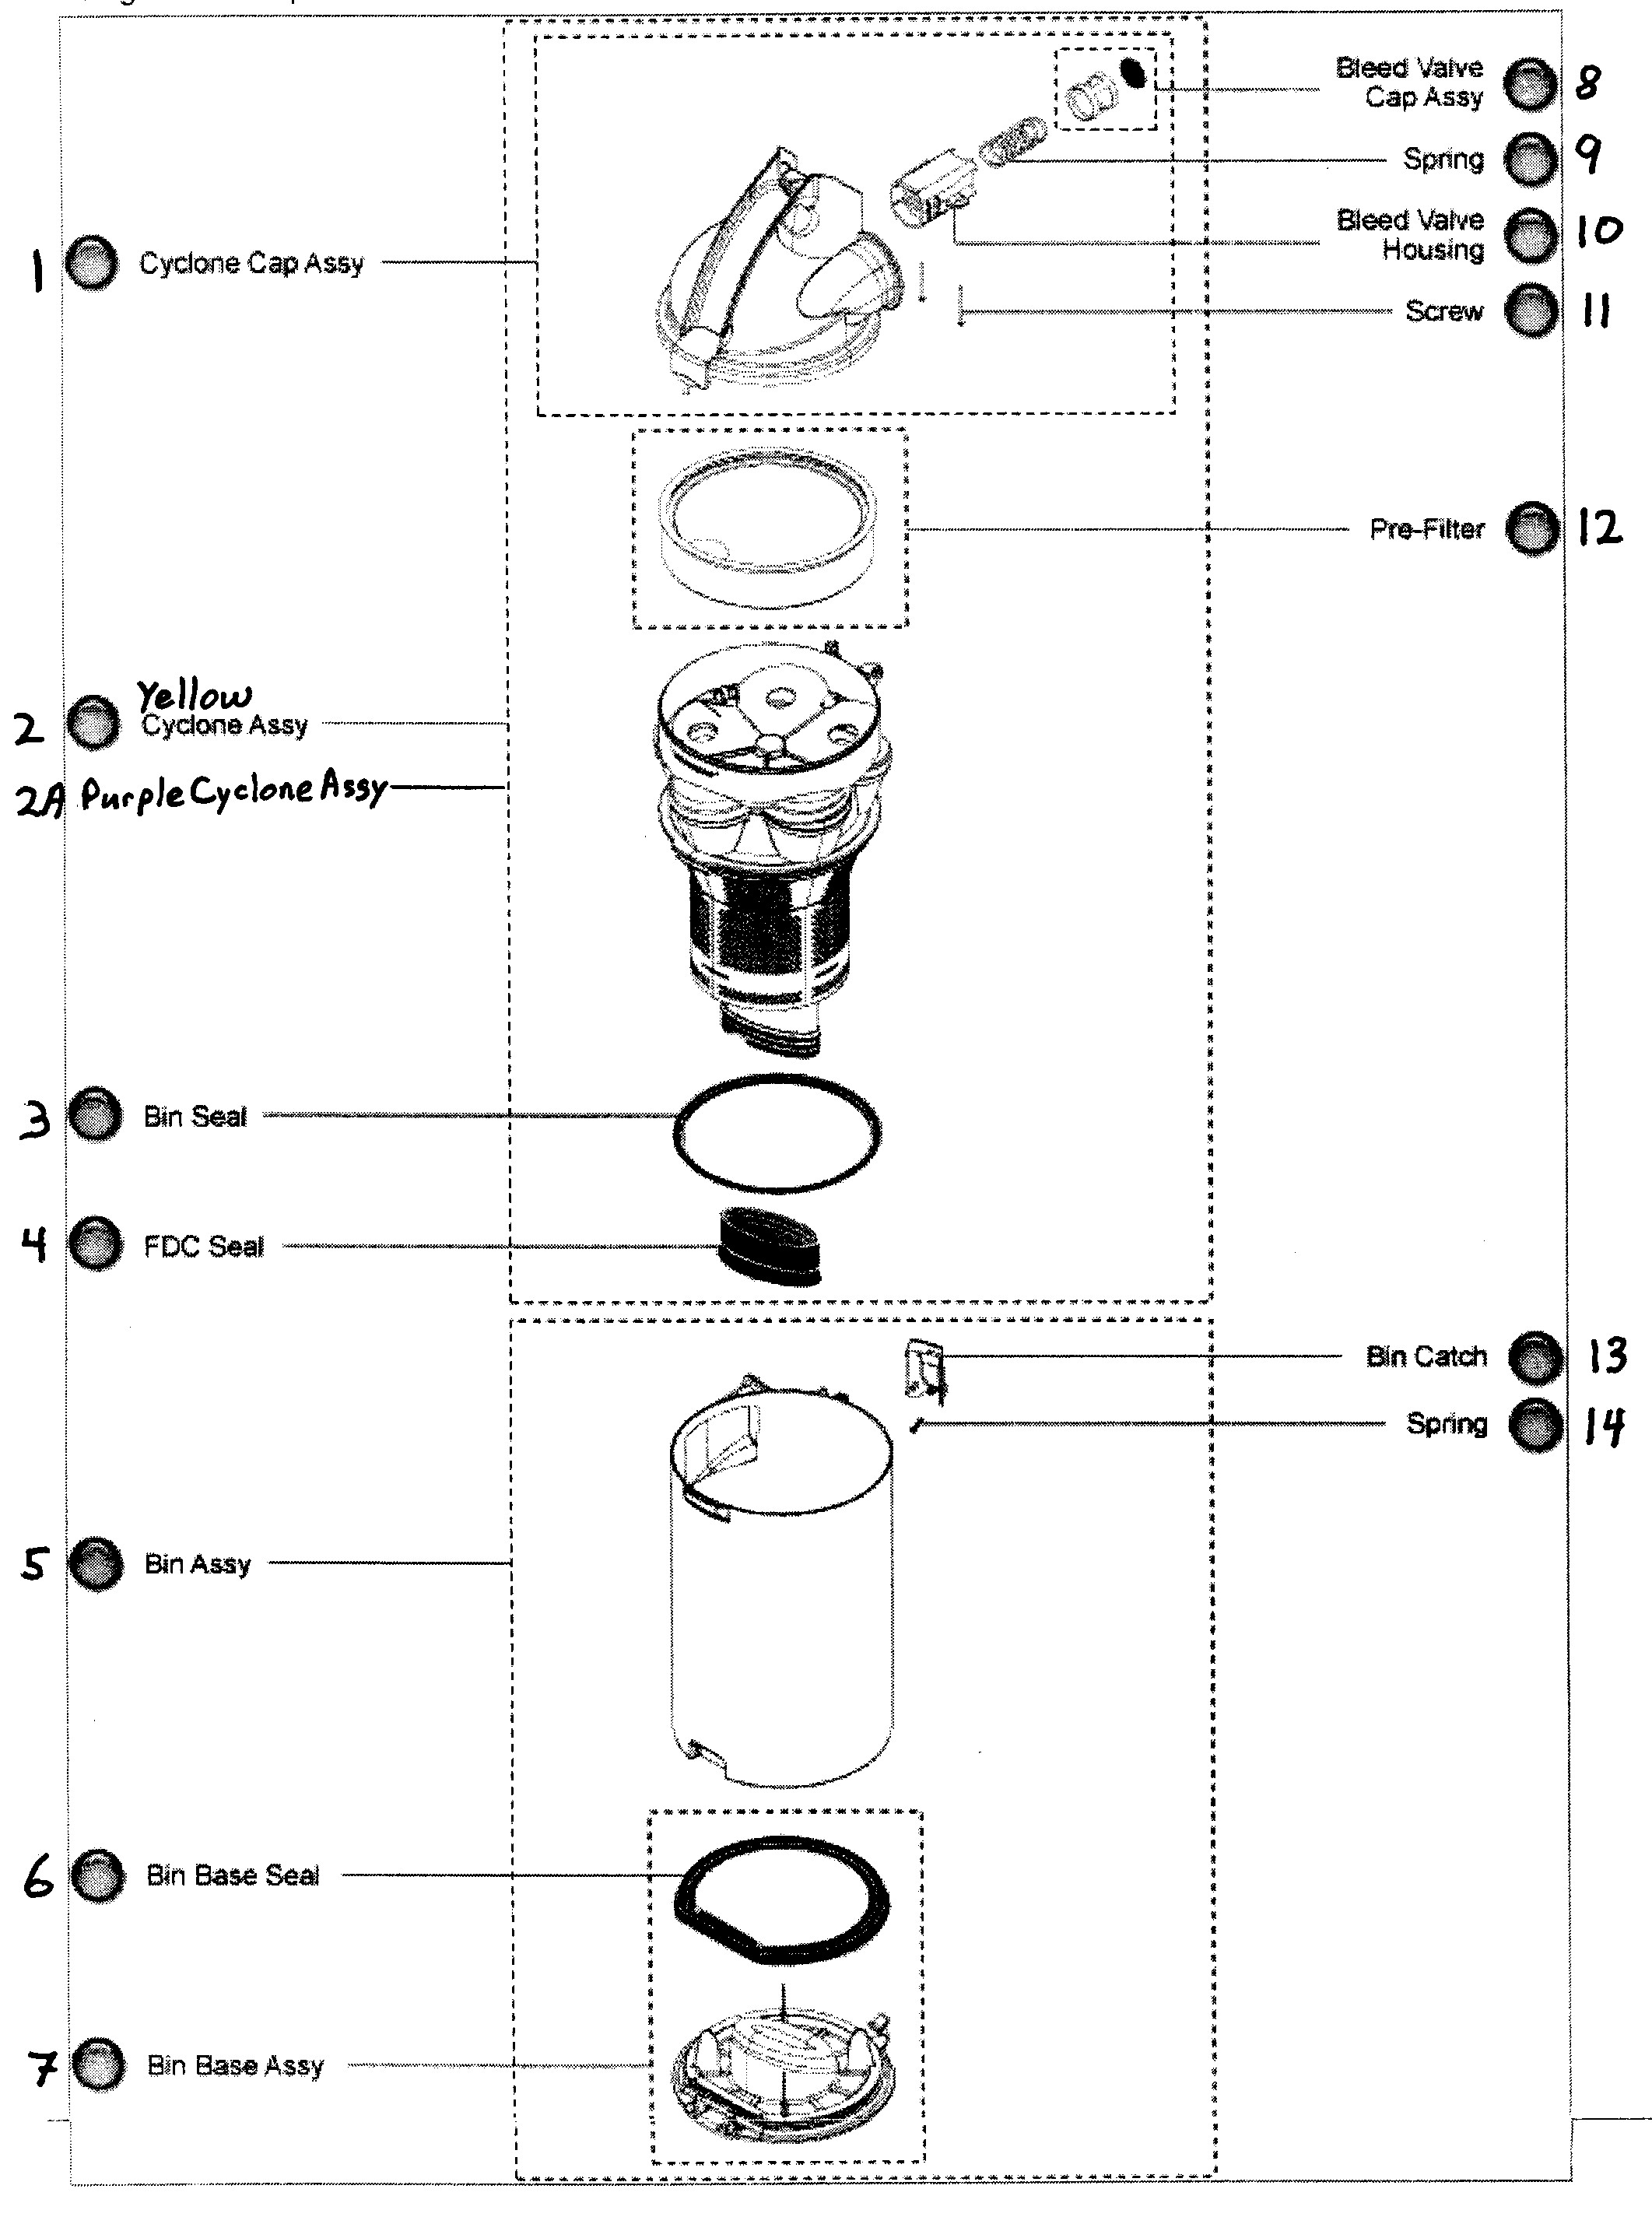 Dyson Dc25 Parts Diagram | My Wiring DIagram